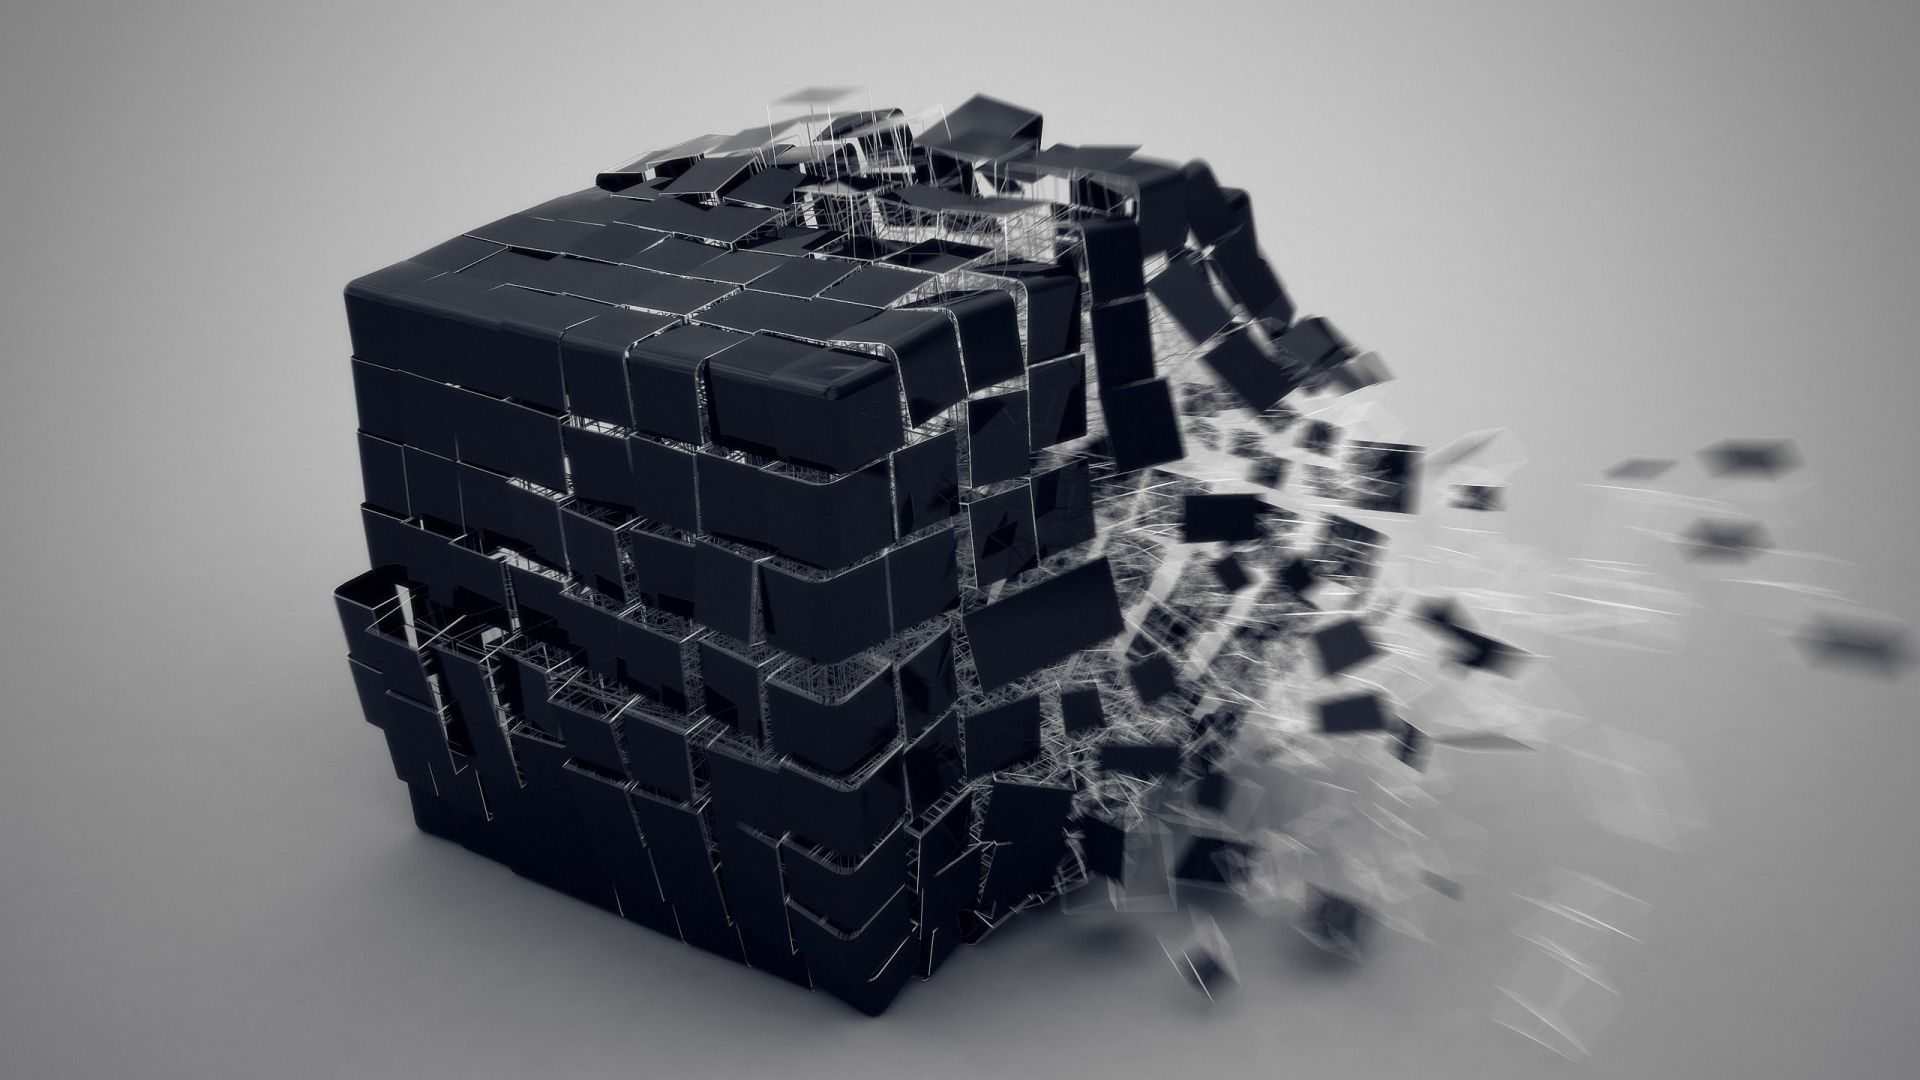 1920x1080 wallpaper cube, burst, forming | wallpapers hd | wallpaper